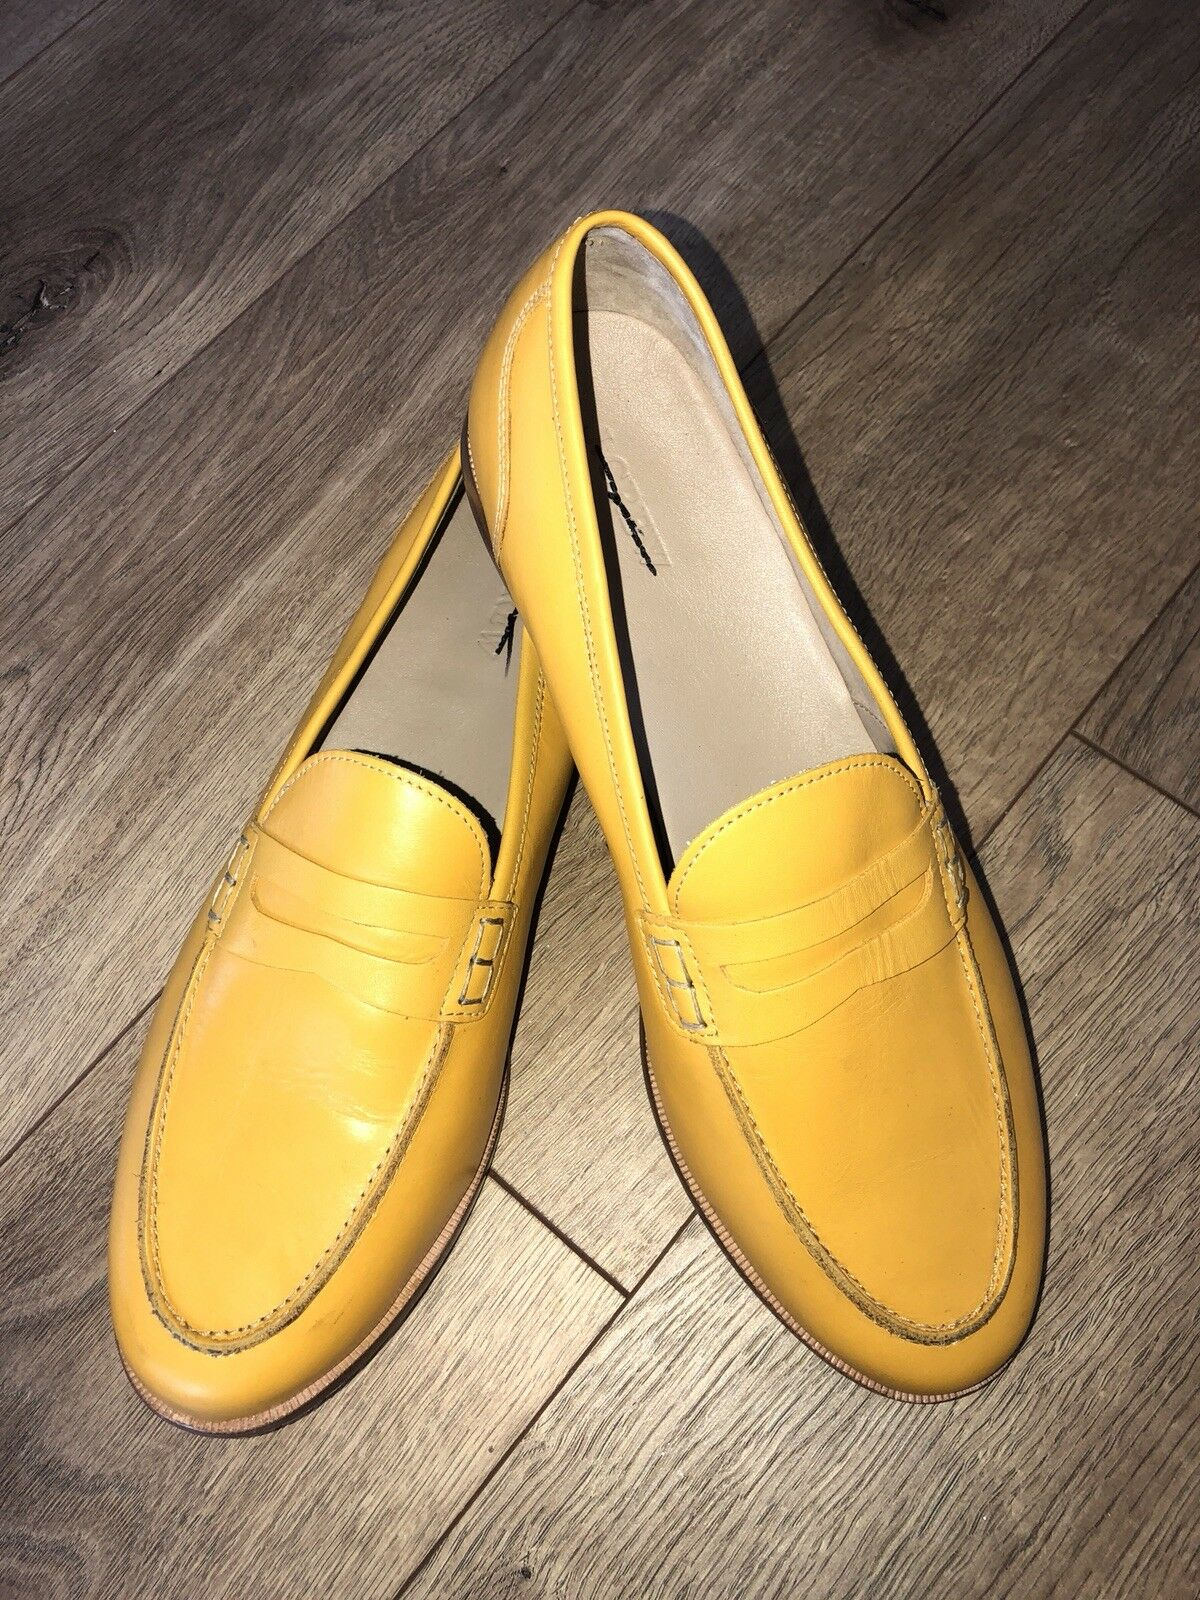 New JCrew Ryan penny loafers Leather Smoky Scarpe 11 Smoky Leather Mustard Yellow H8200 9f03e1